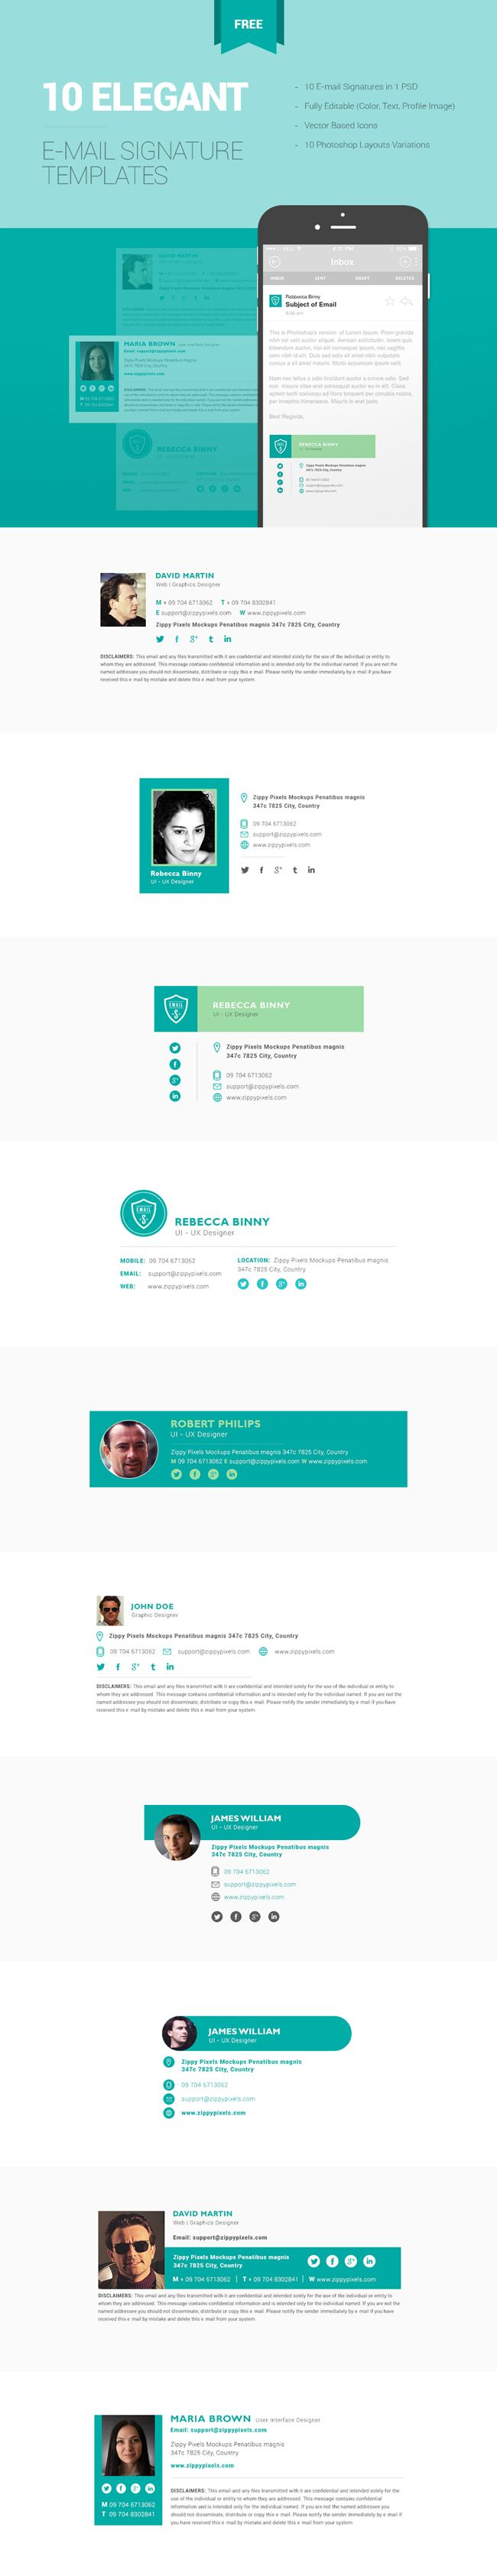 10 Free Email Signature Templates   Email Marketing and